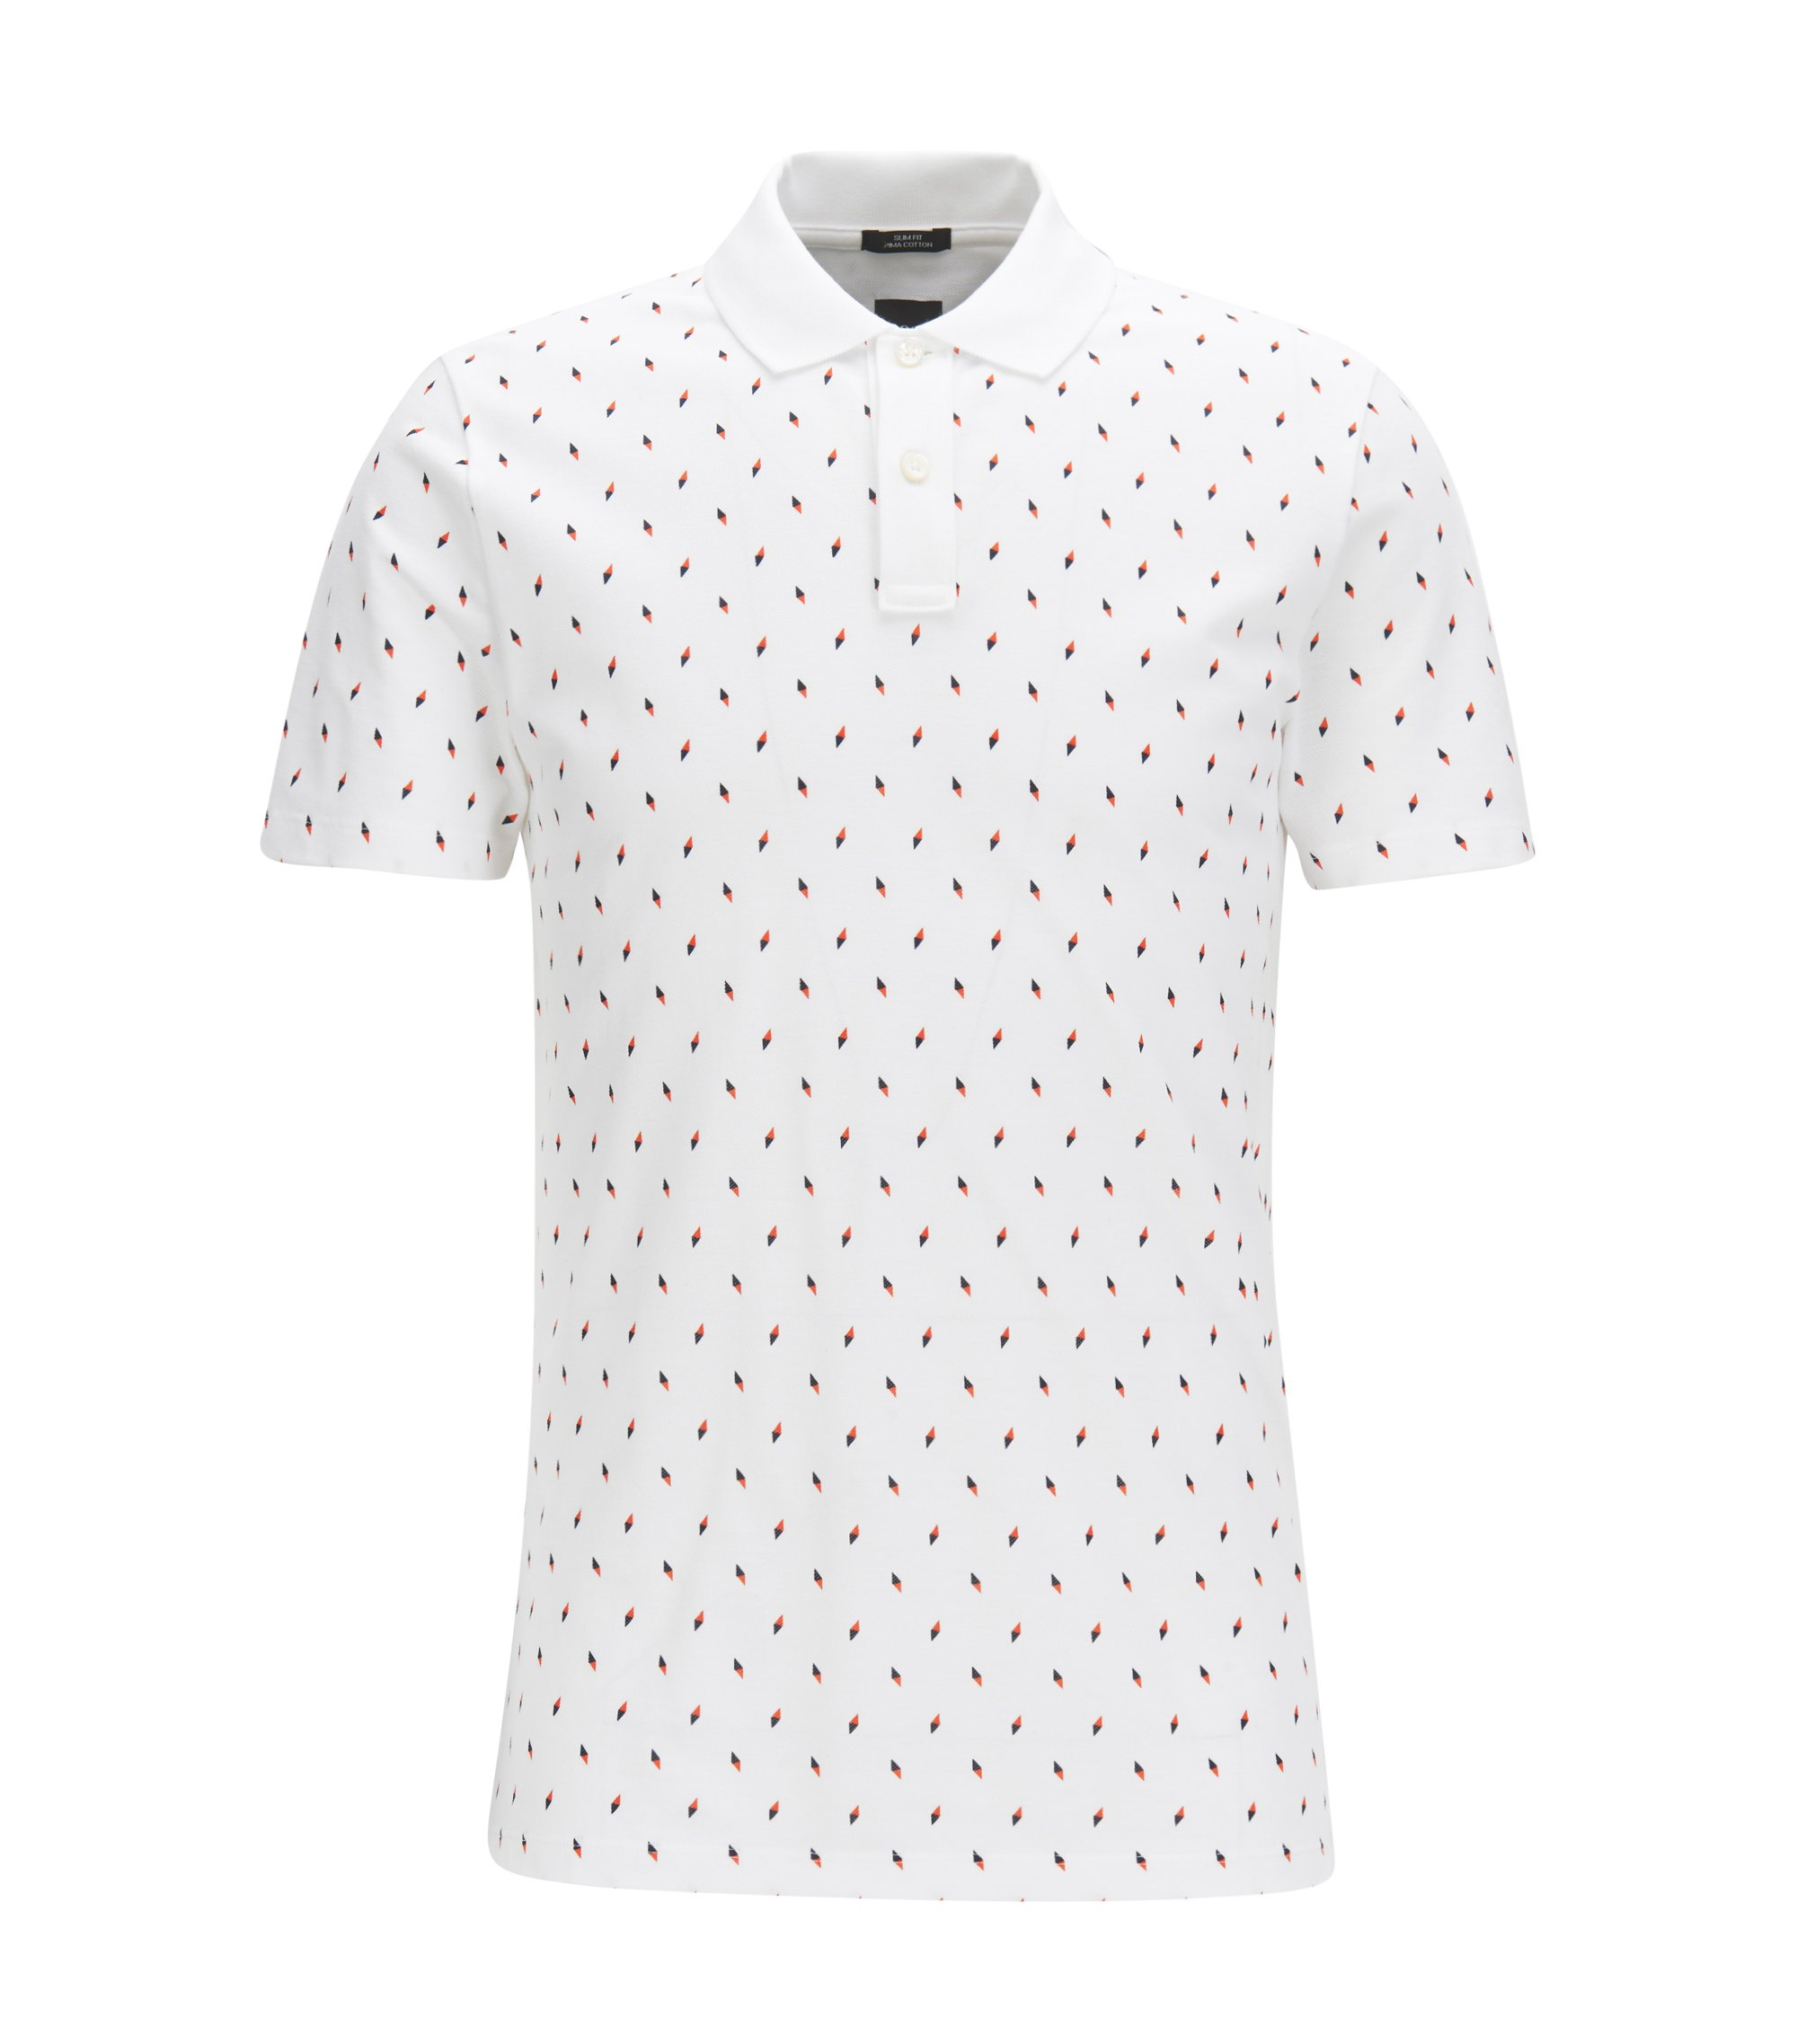 Cotton Blend Polo Shirt, Slim Fit | Plater 06, White